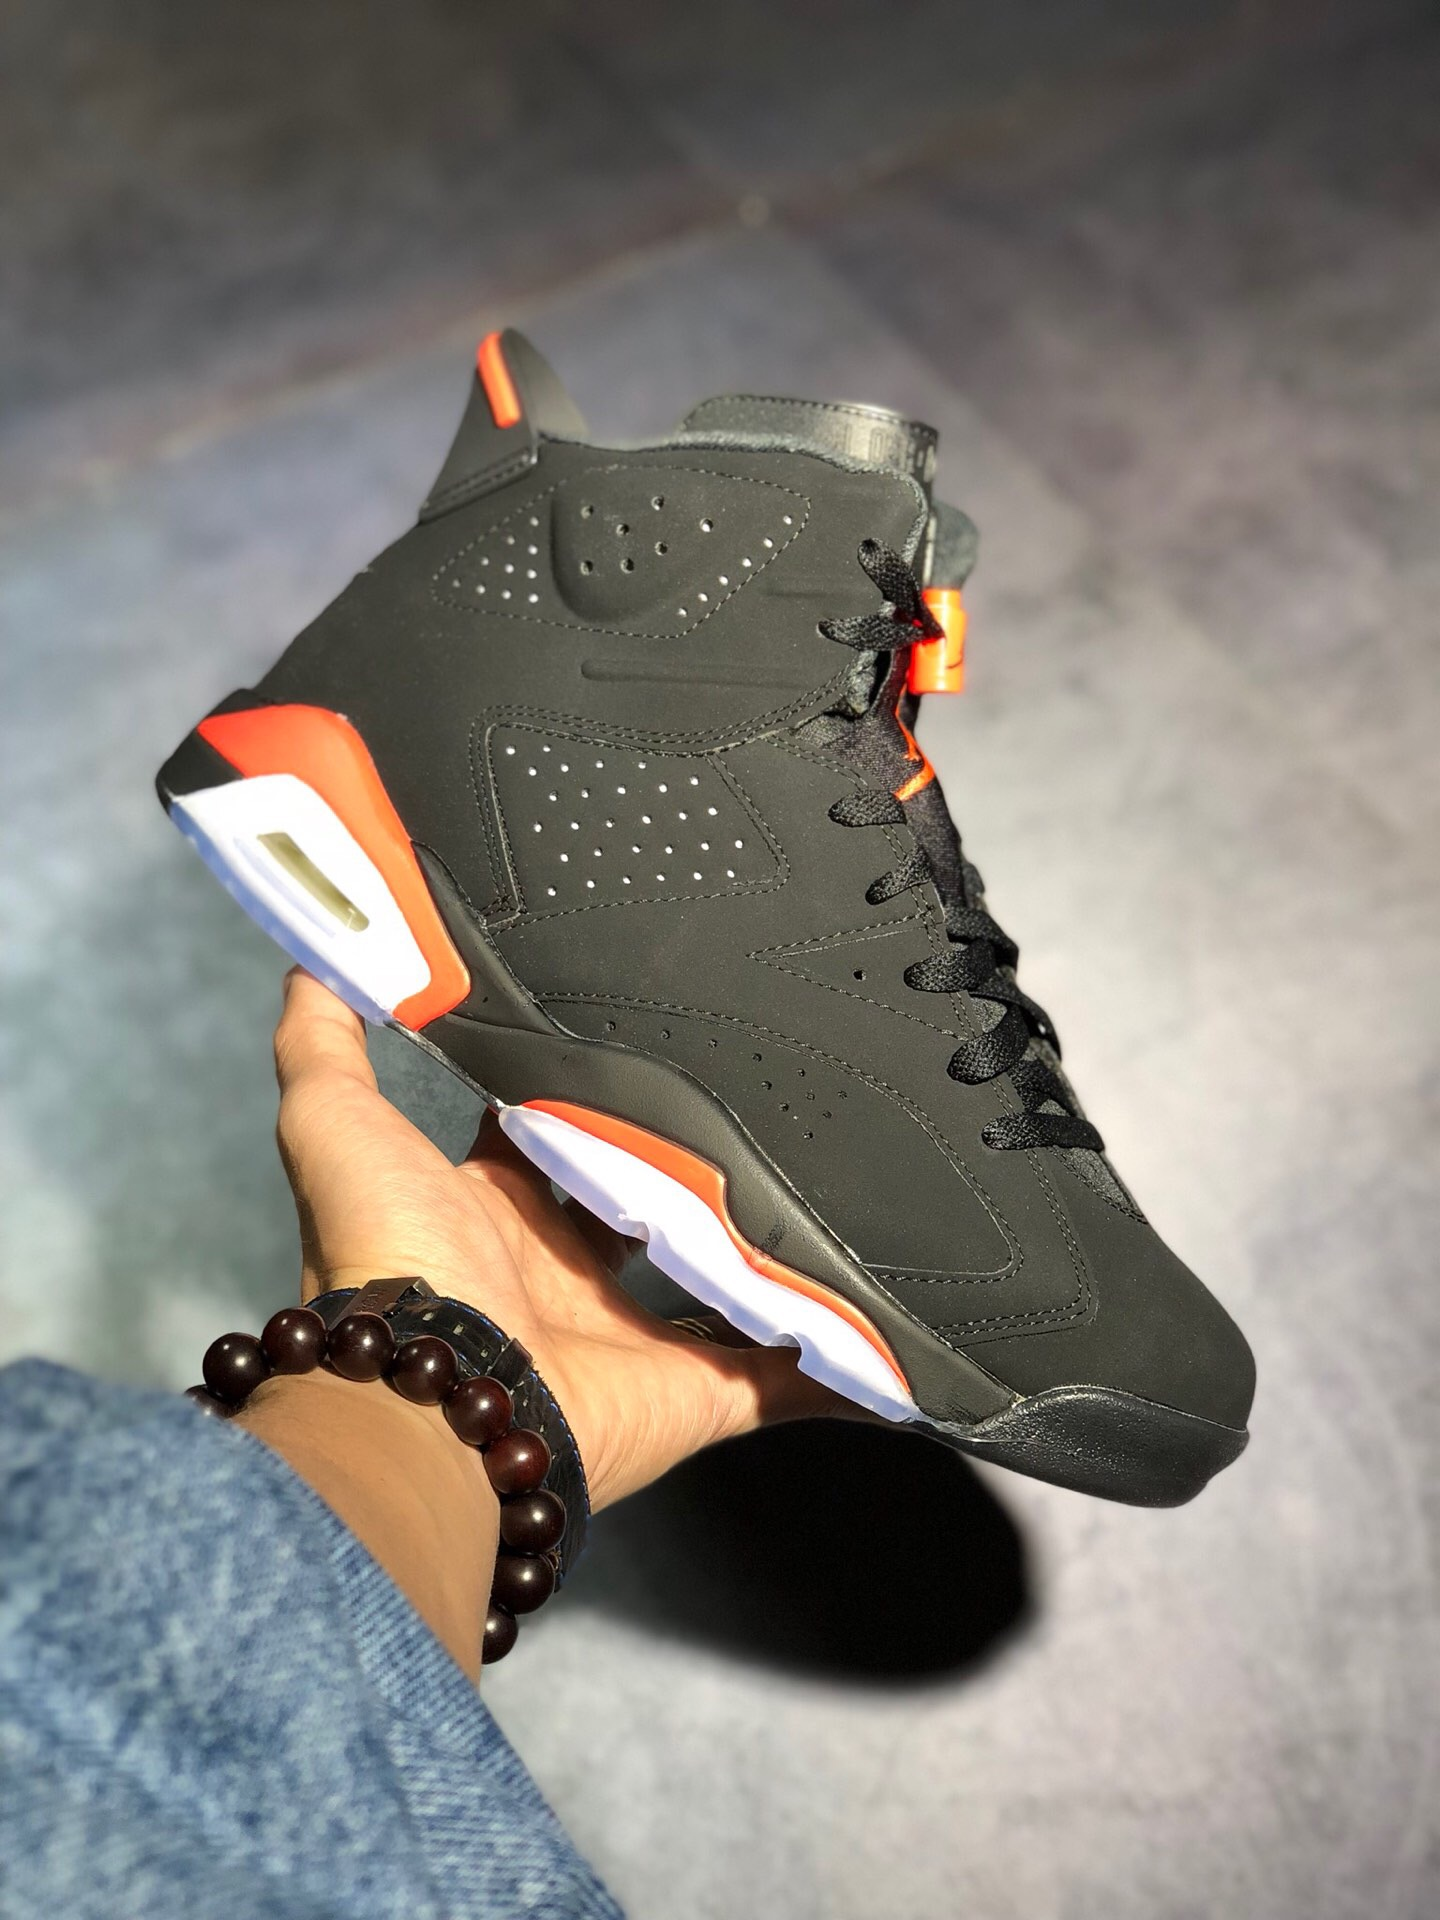 Authentic Air Jordan 6